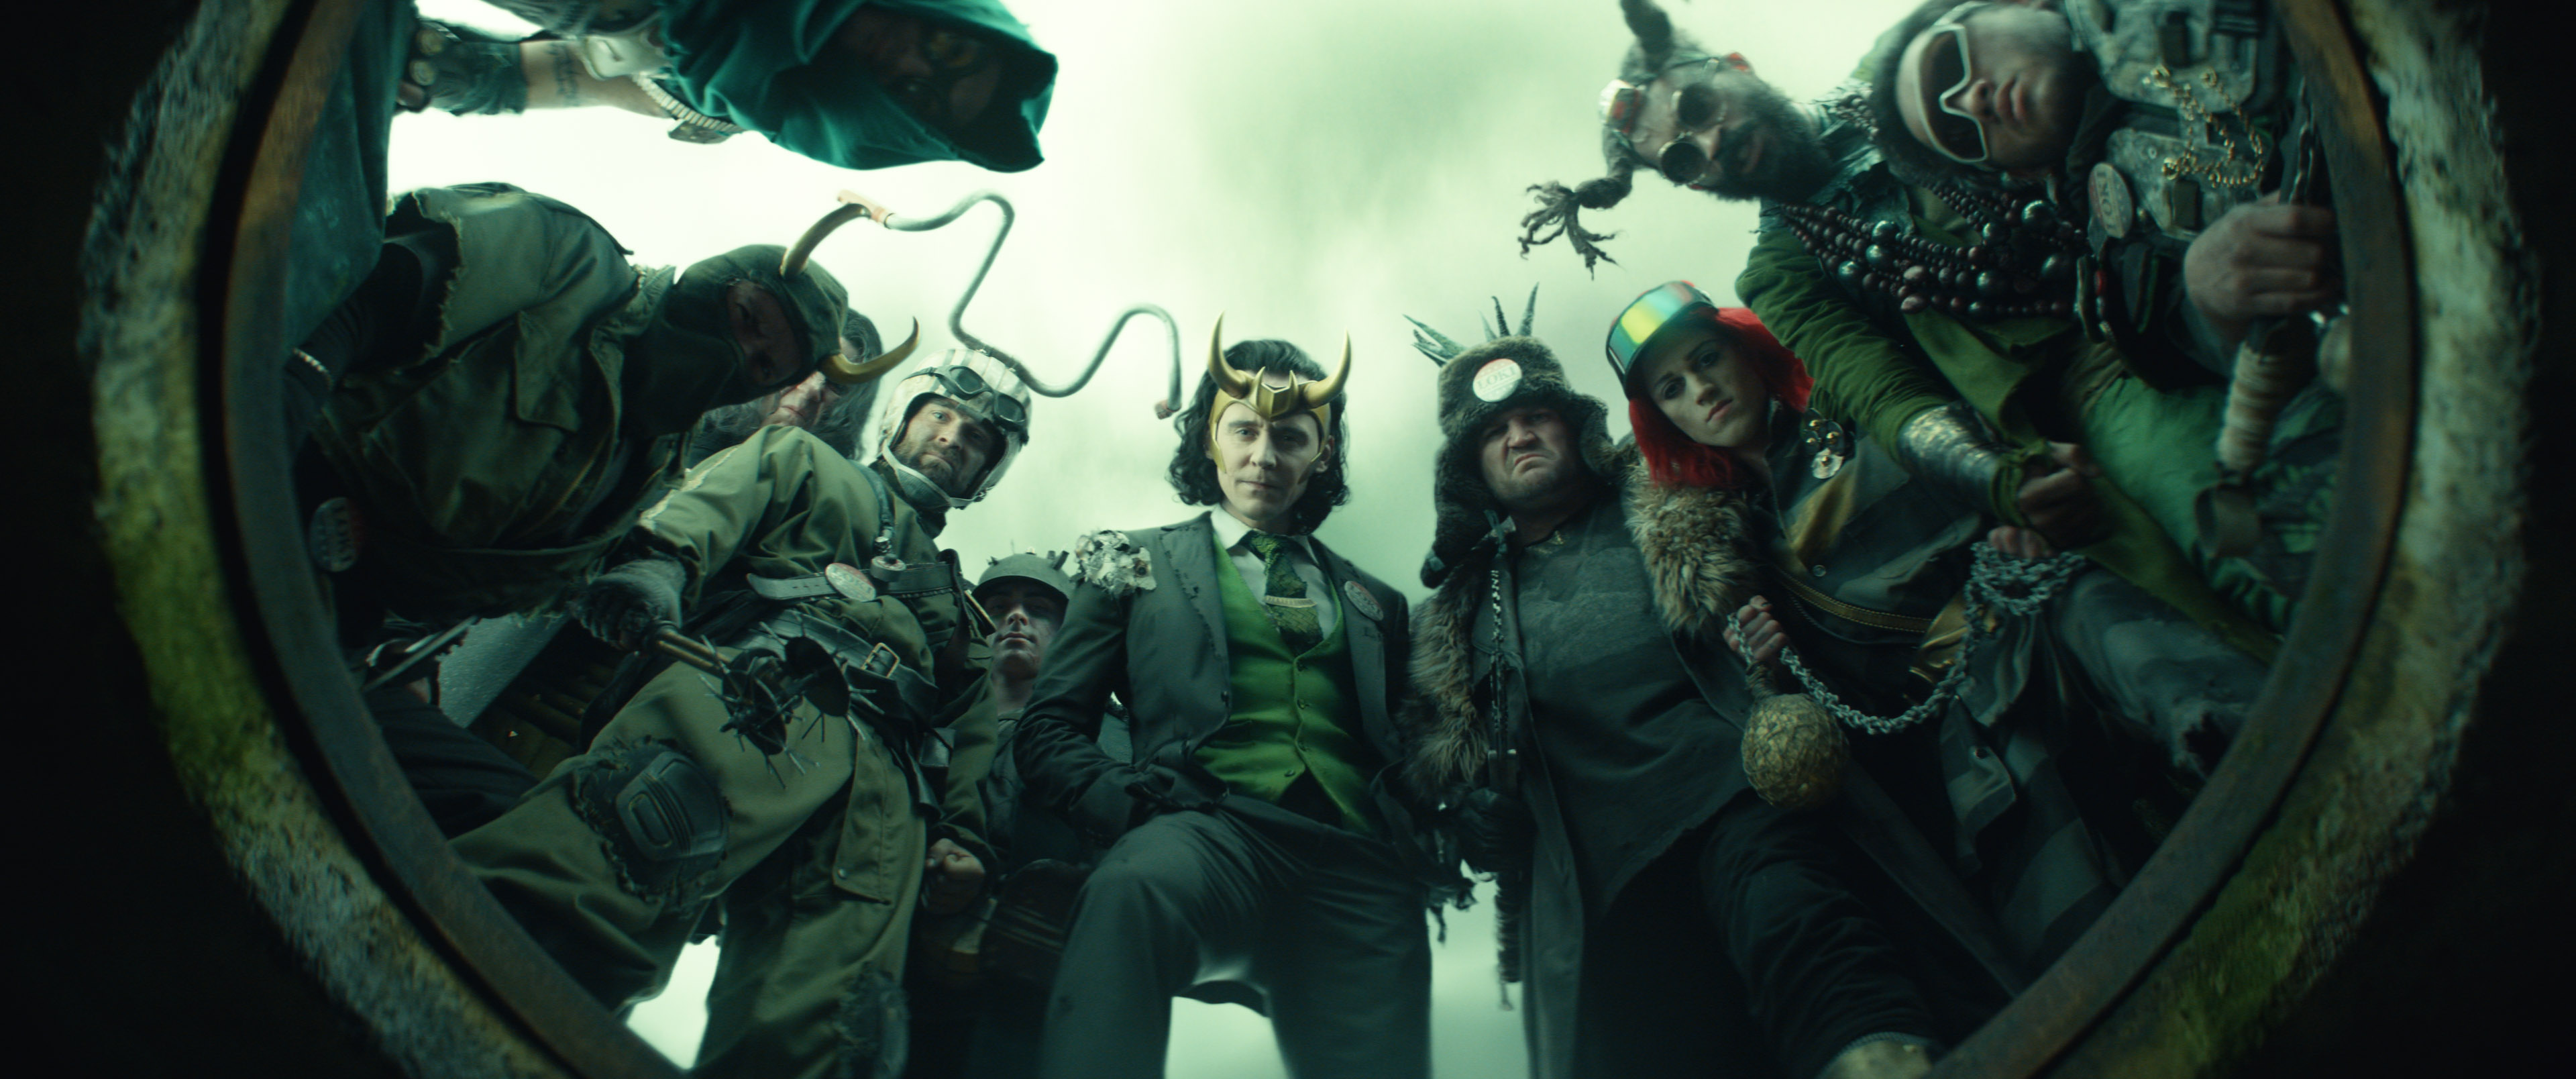 A whole buncha Lokis, centered on President Loki, look down at the camera in episode 5 of Loki